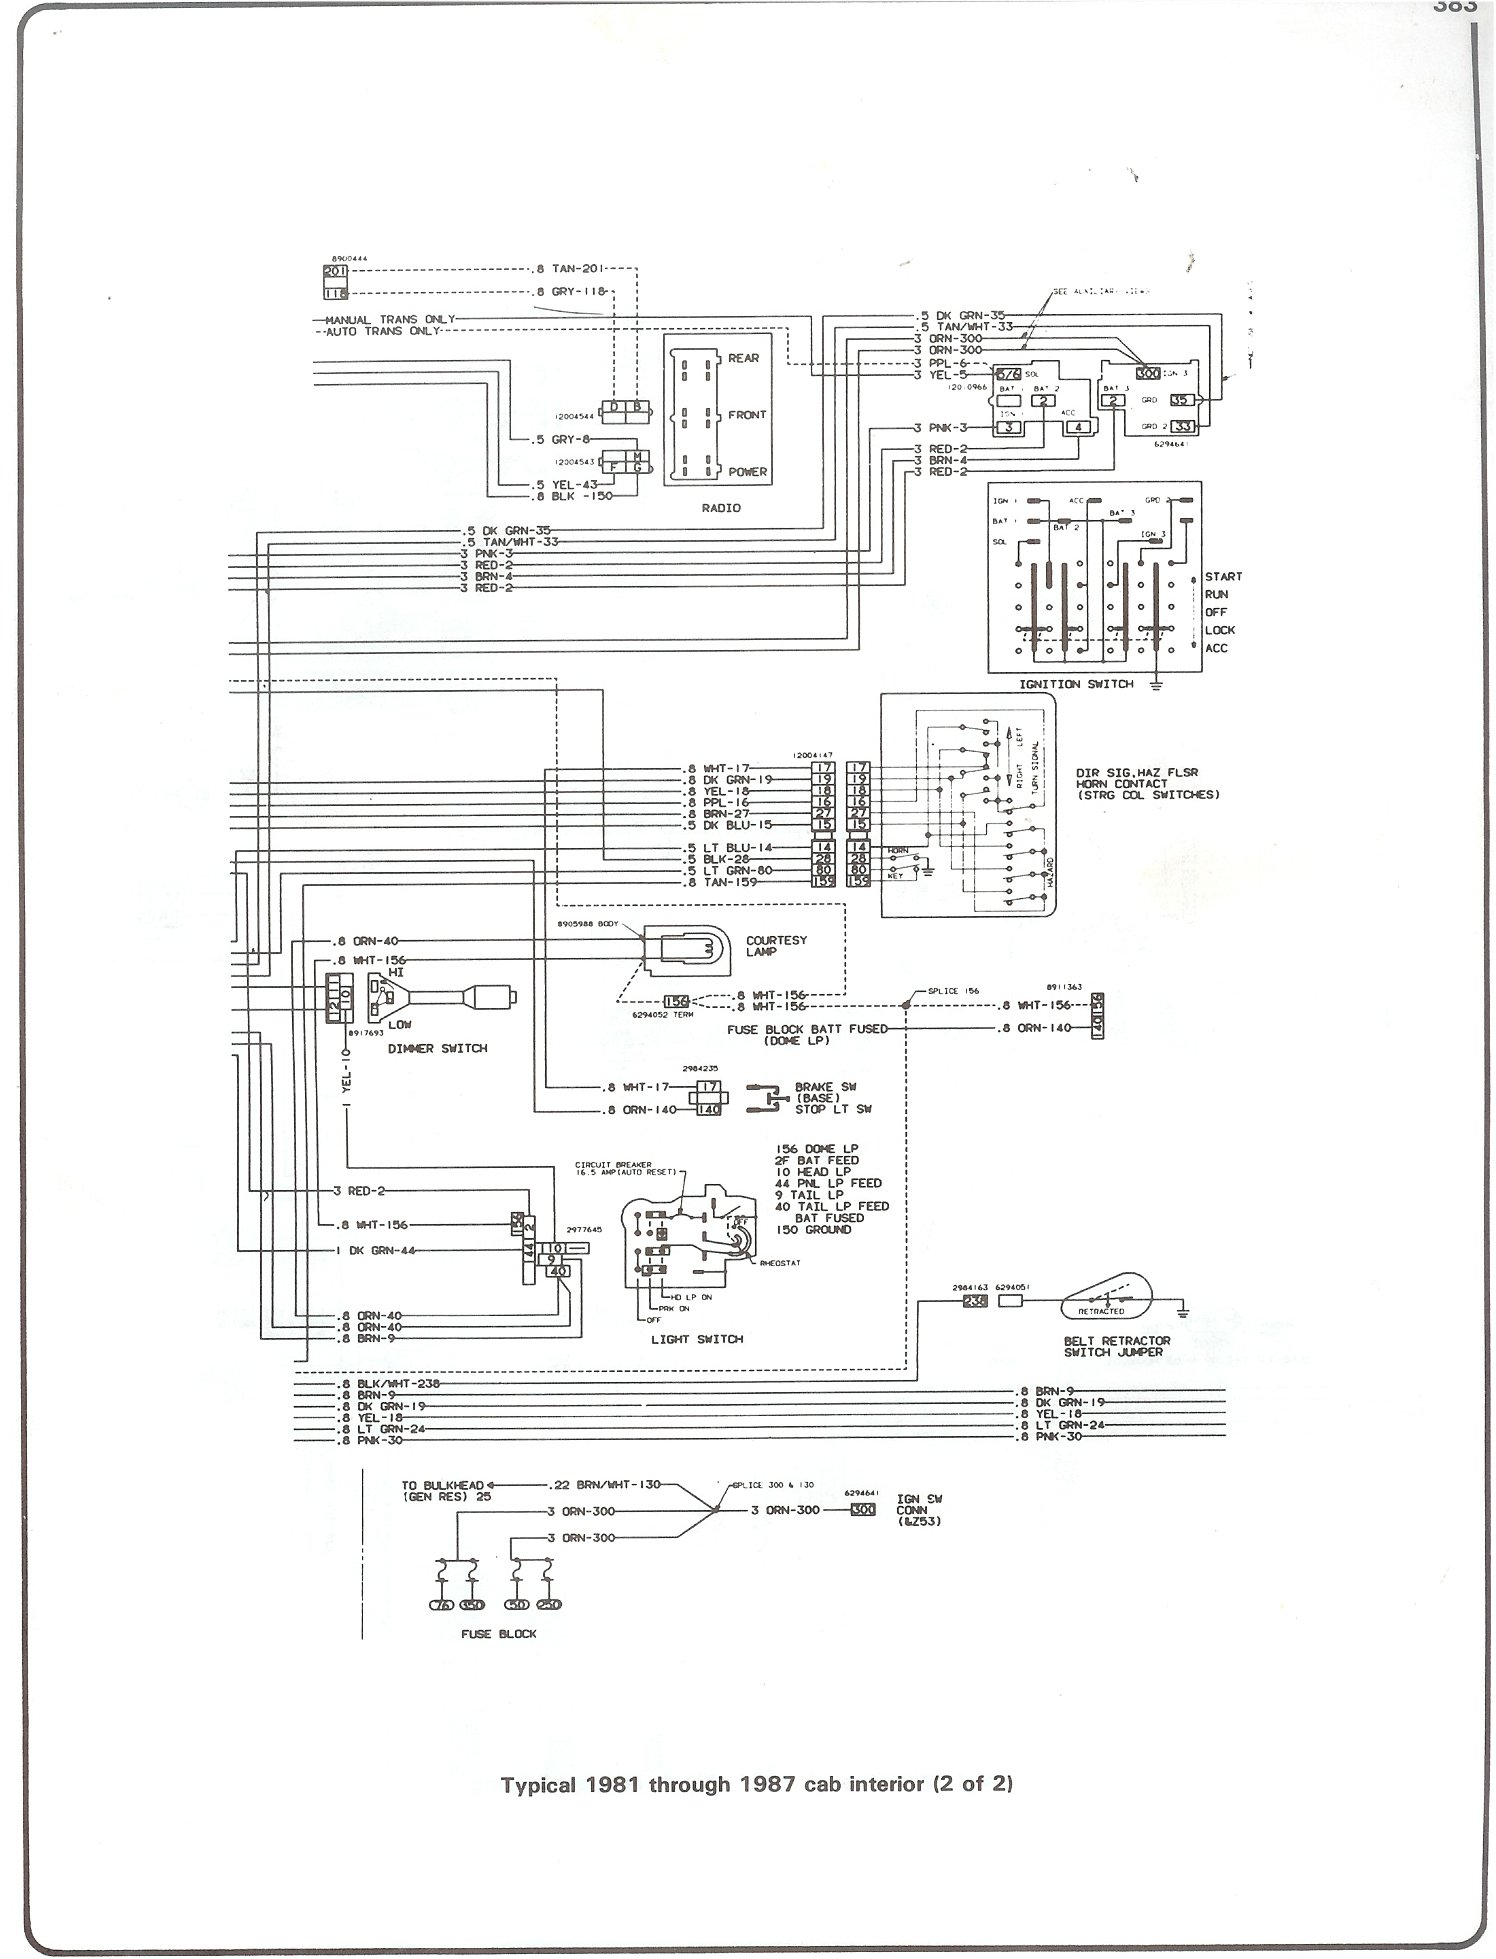 1983 Chevy C30 Fuse Box Diagram Wiring Library Truck 81 87 Cab Interior Page 2